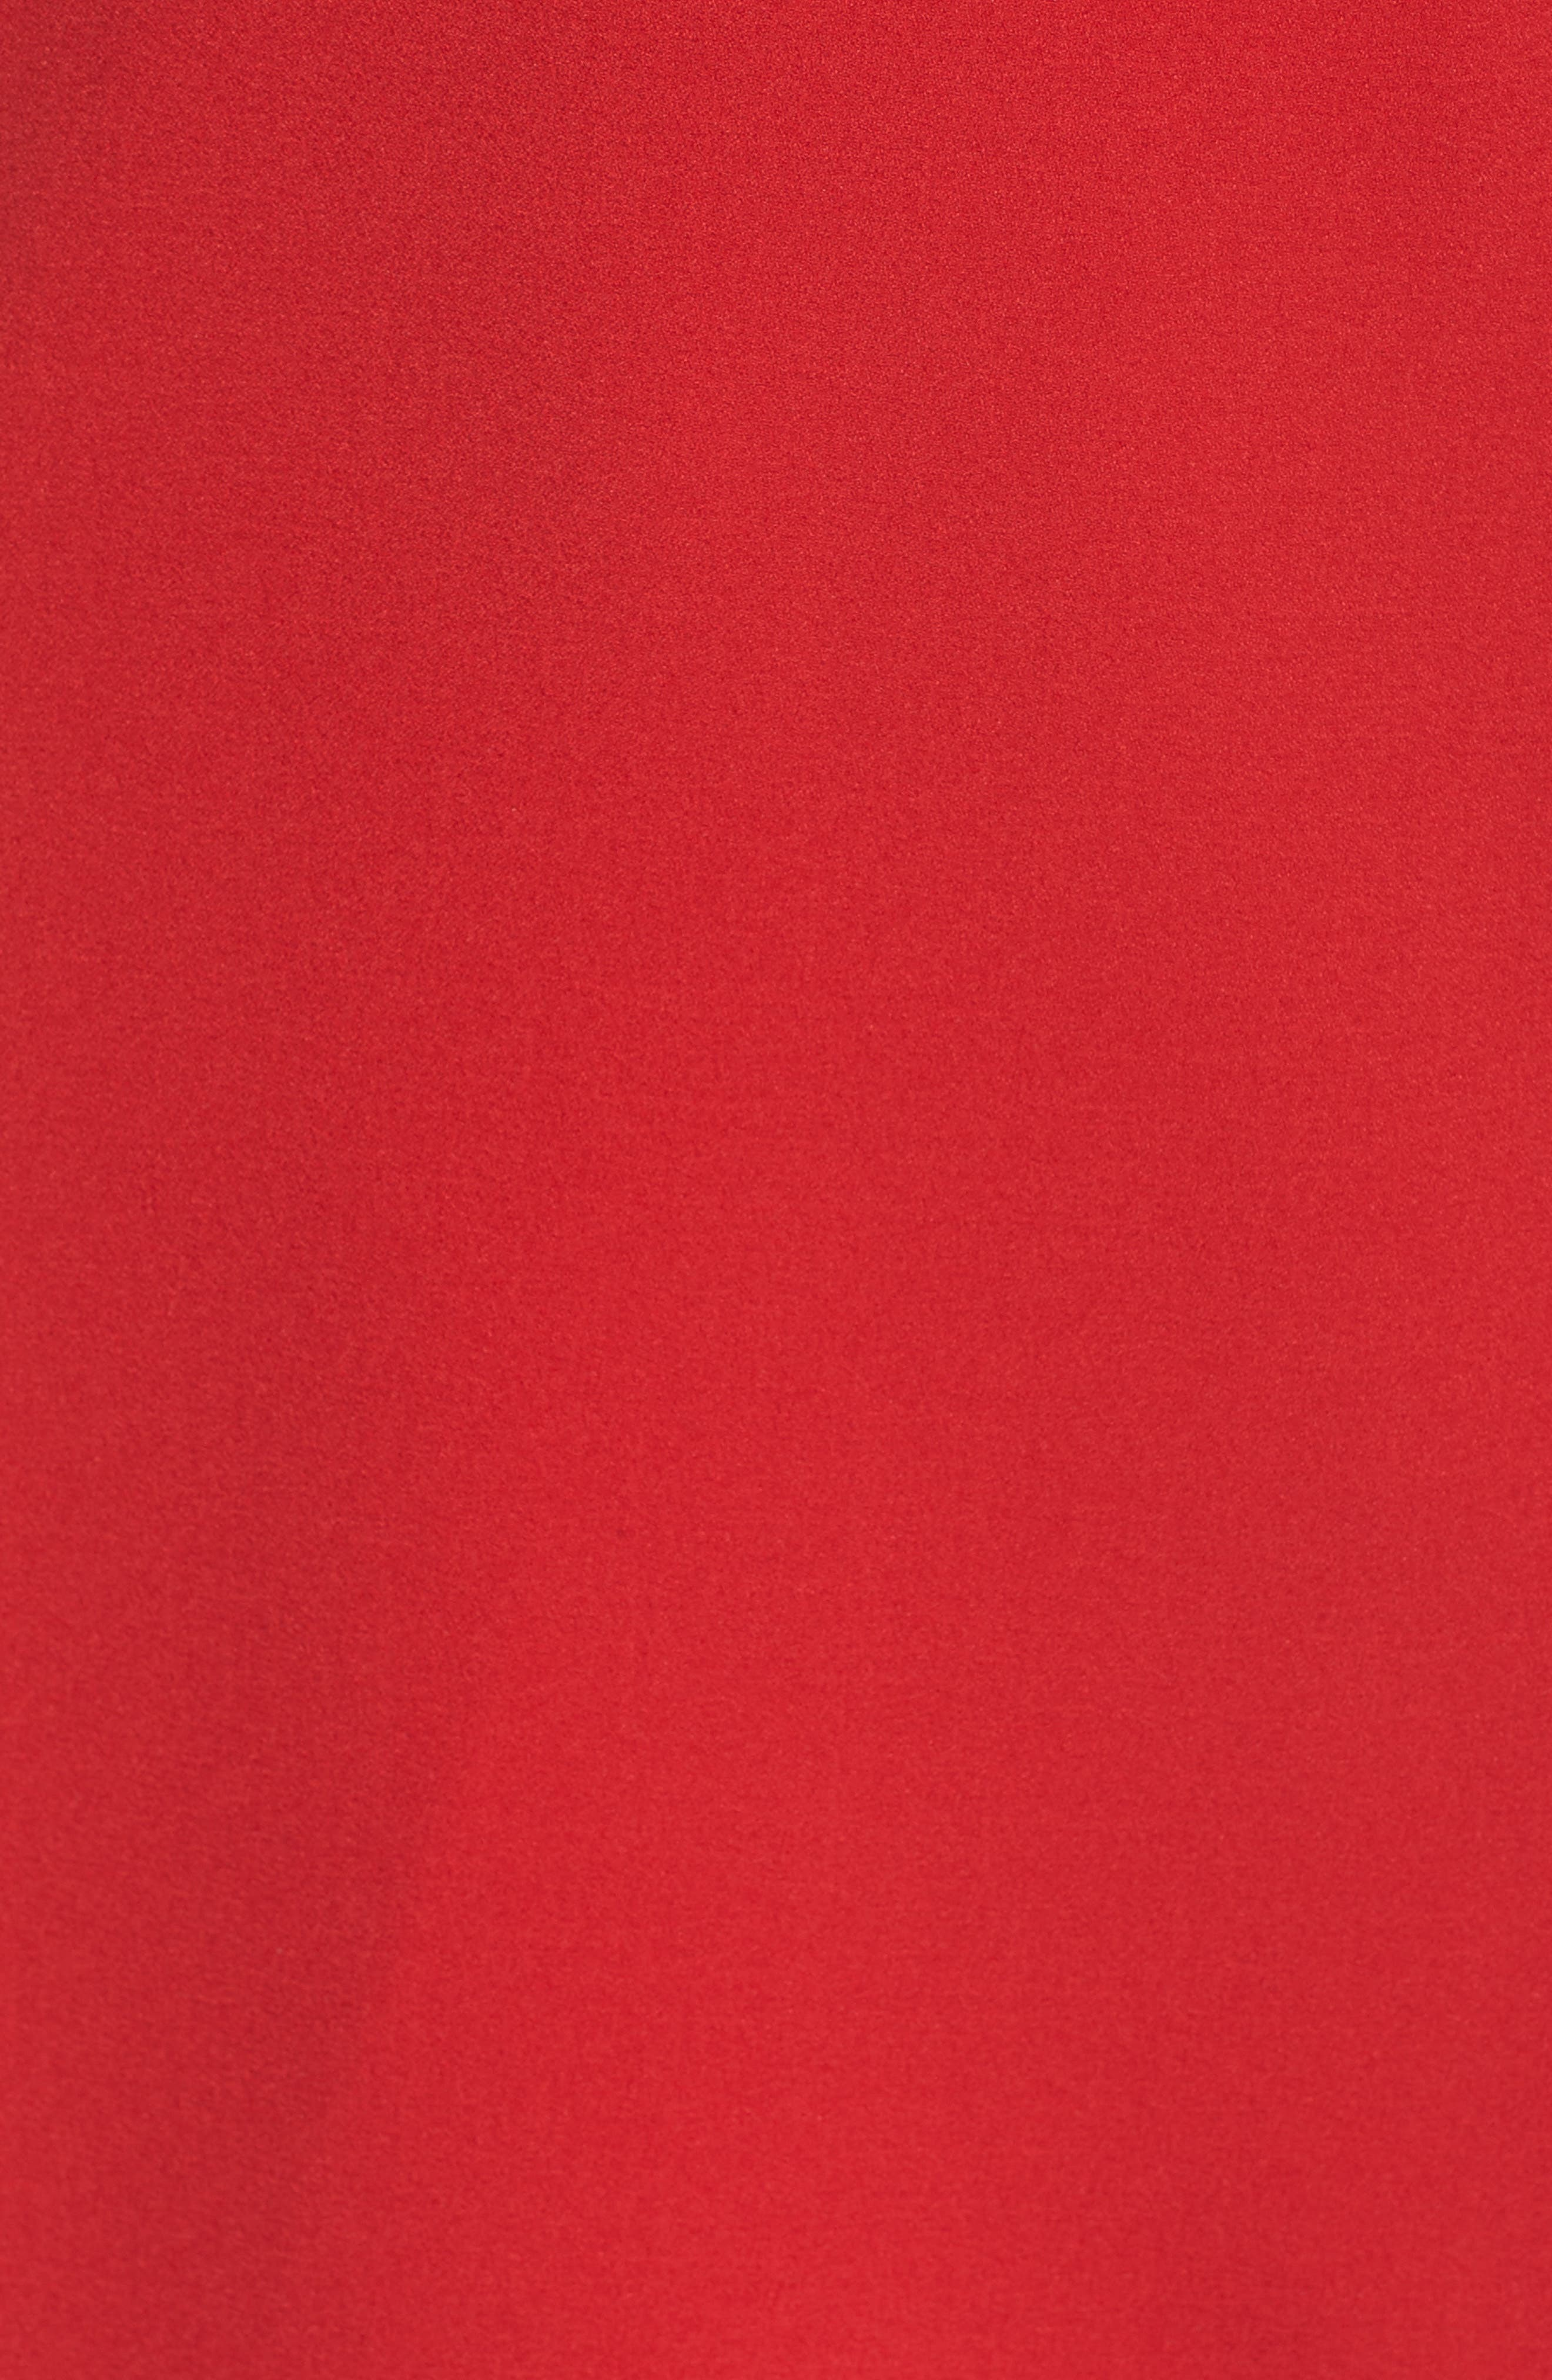 A-Line Dress,                             Alternate thumbnail 4, color,                             Red